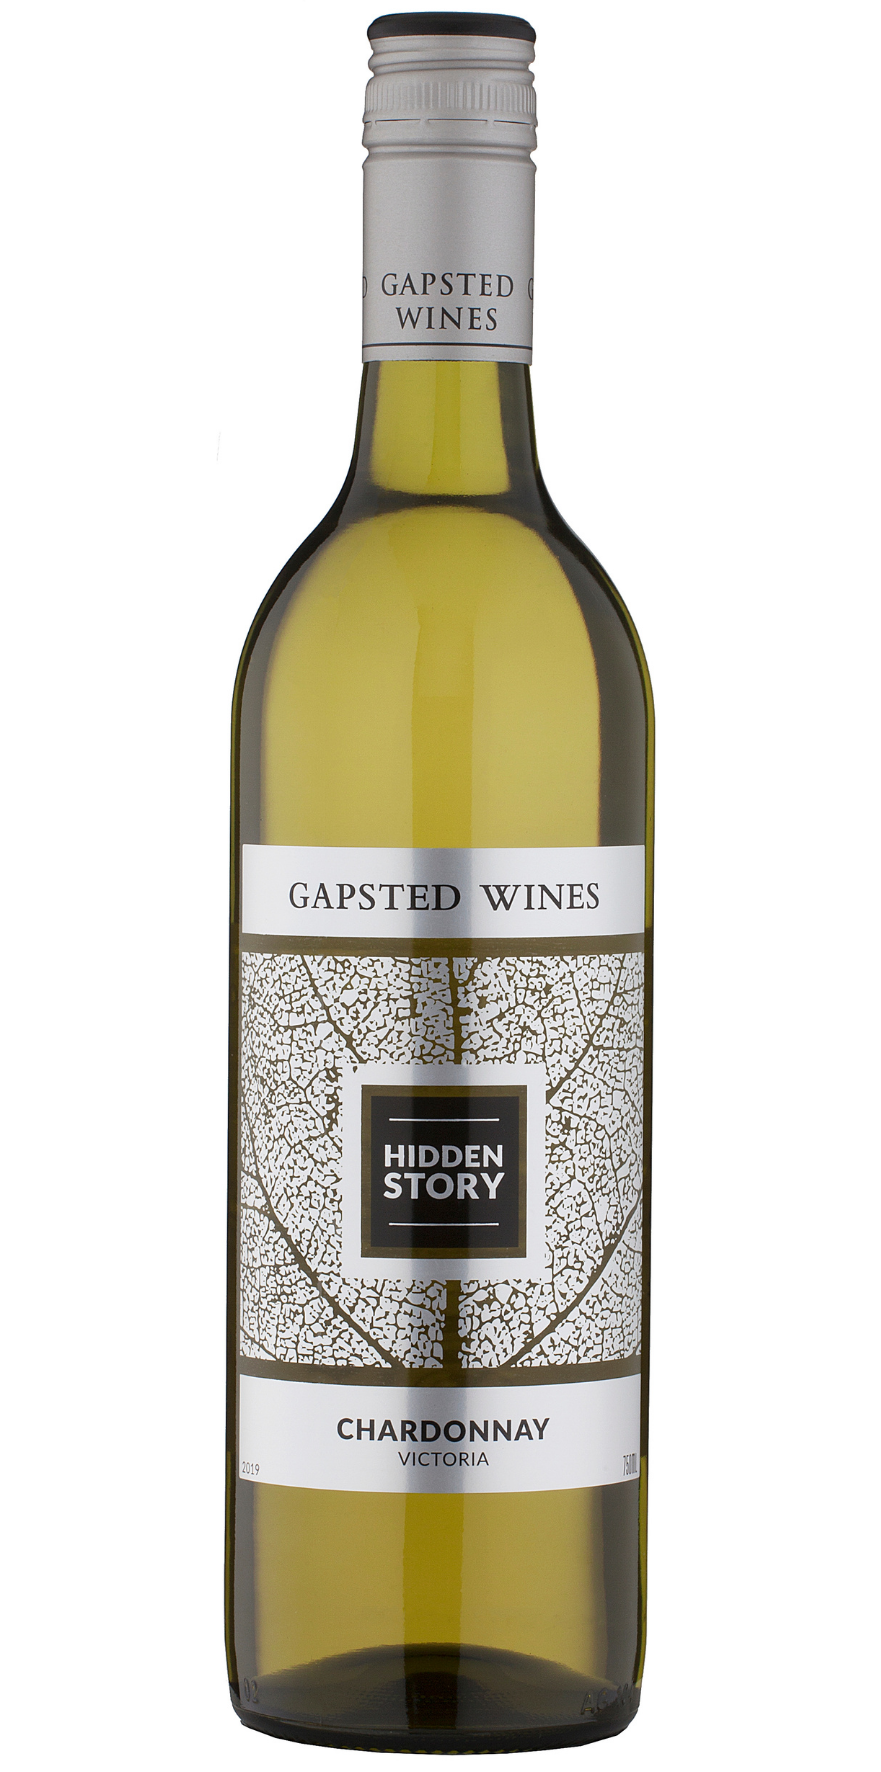 Hidden Story 2019 Chardonnay - Gapsted Wines